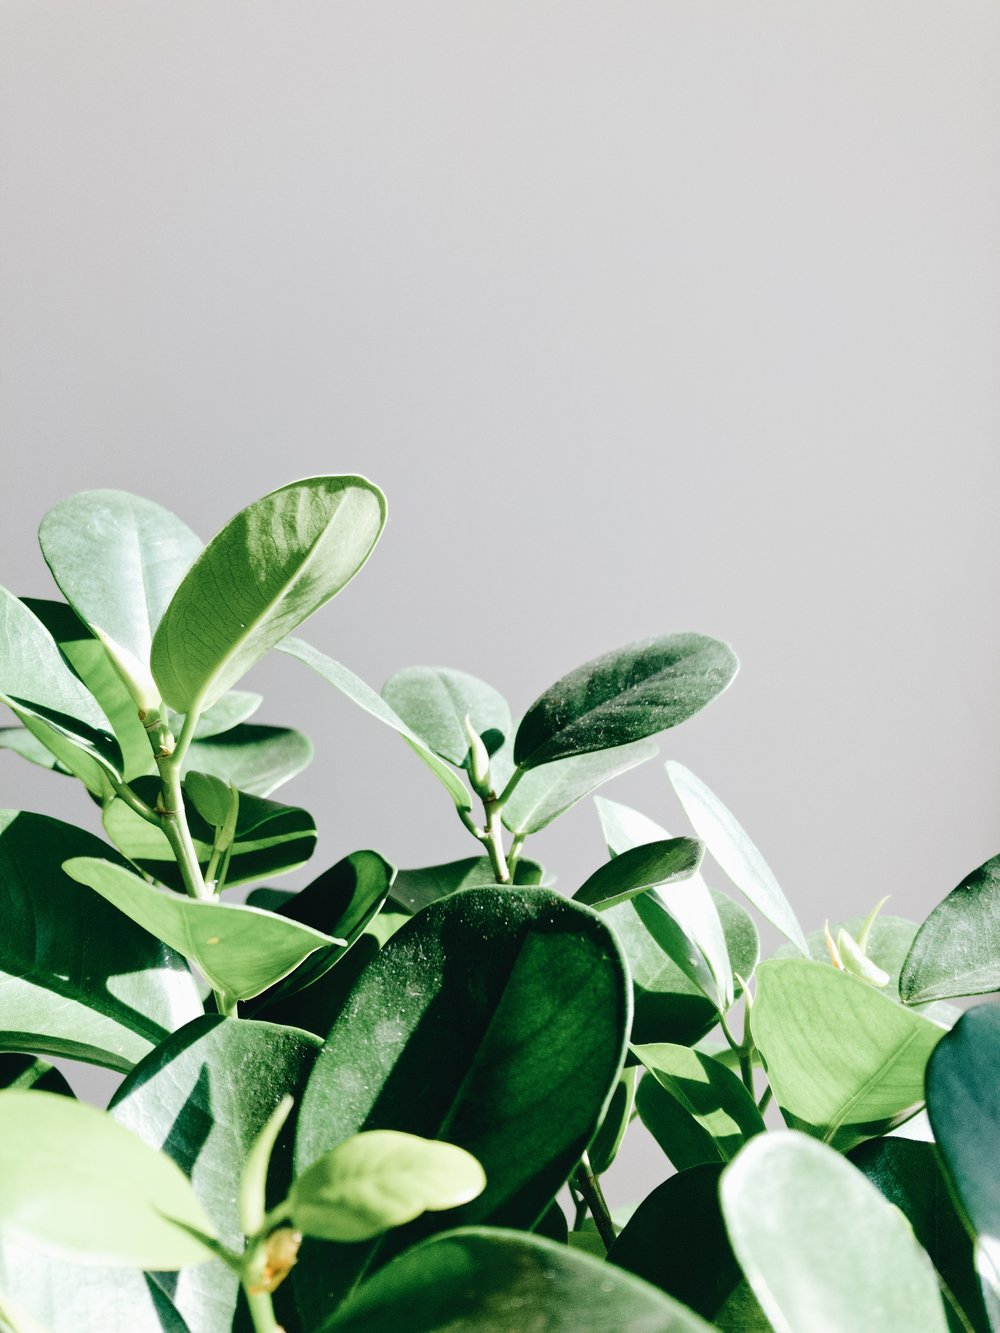 What's wrong with your houseplant? - Here are things to look for so you can troubleshoot the issue.